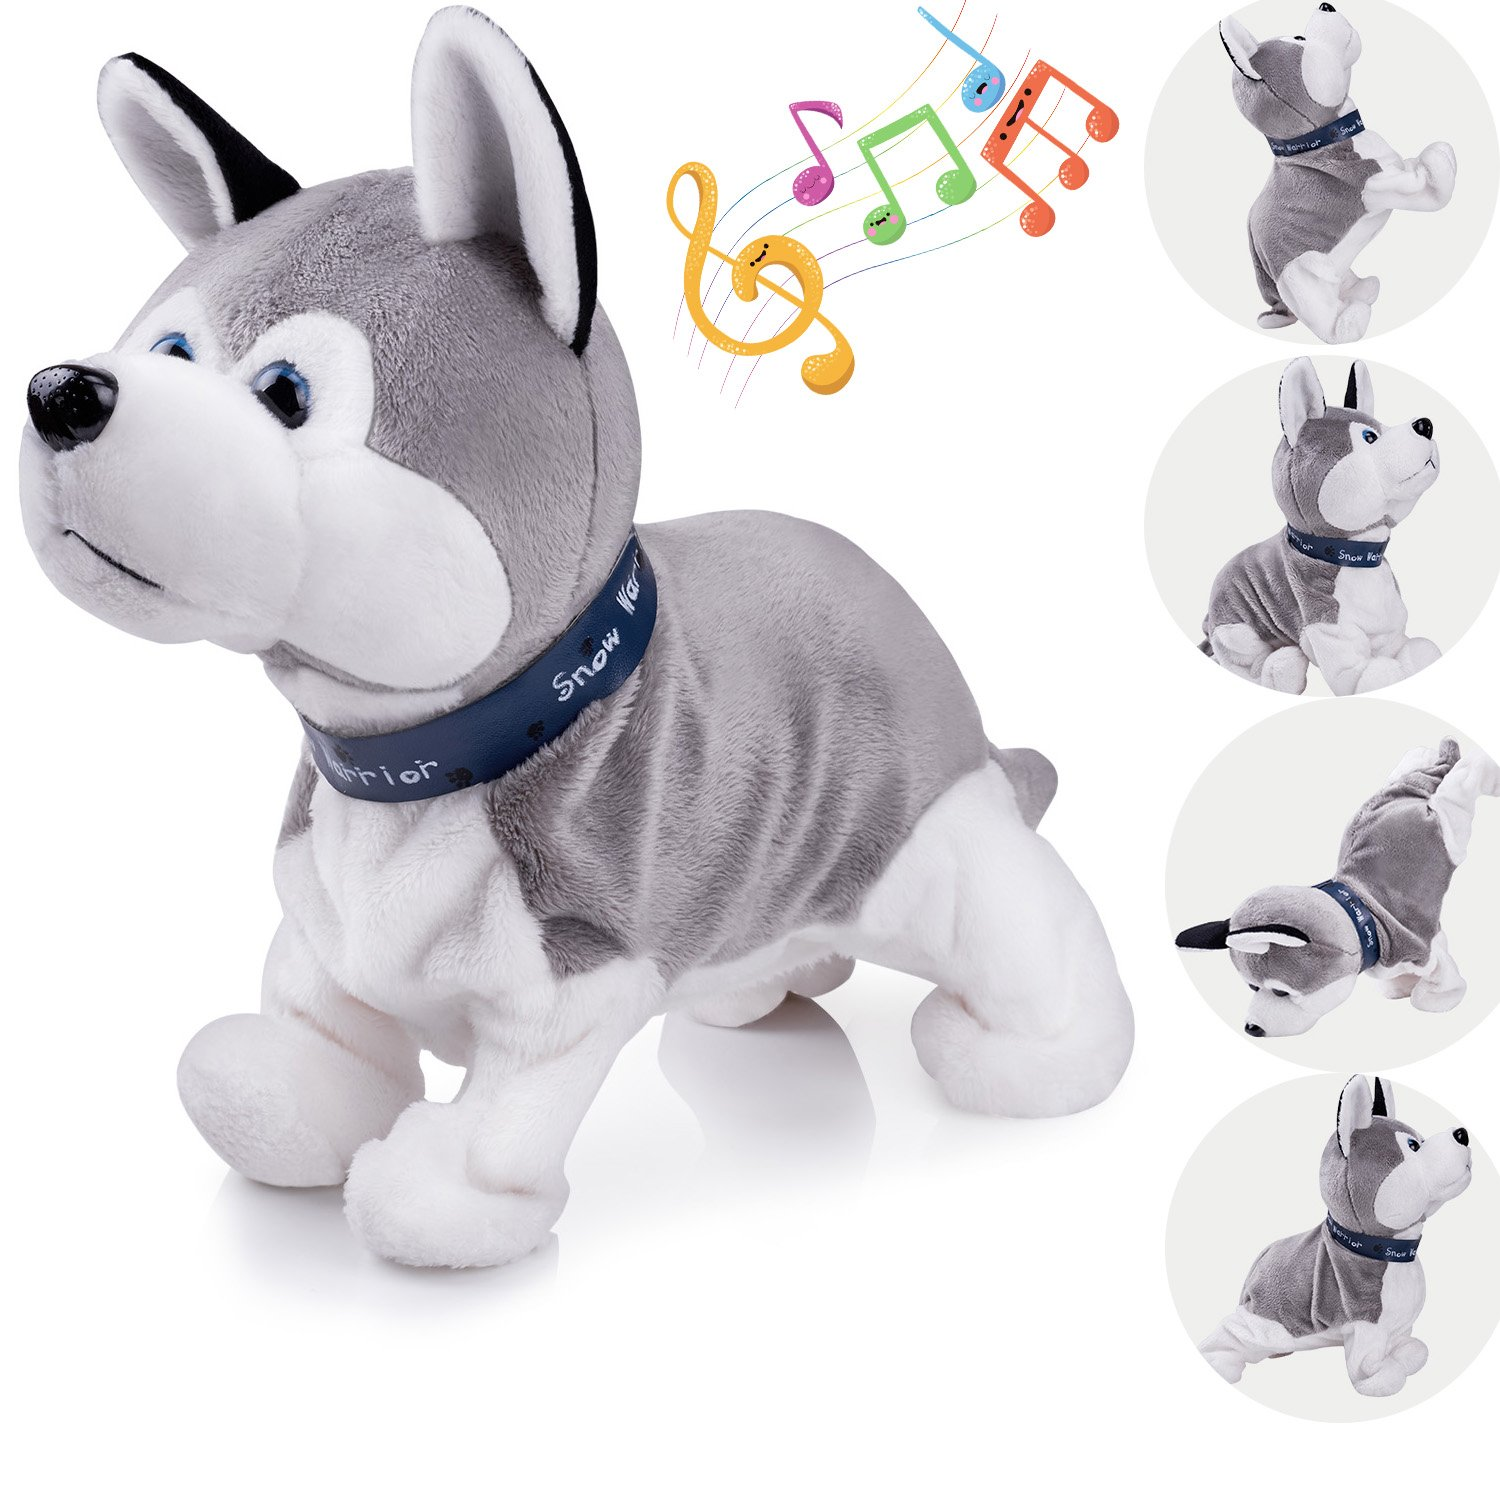 7dee897419 Interactive Puppy Plush Animated Pet Electronic Dog Cute Robot Dog Baby  Toys Touch Control Plush Husky Stuffed Animal Dog Toy Toddler kids Girl  Toys ...